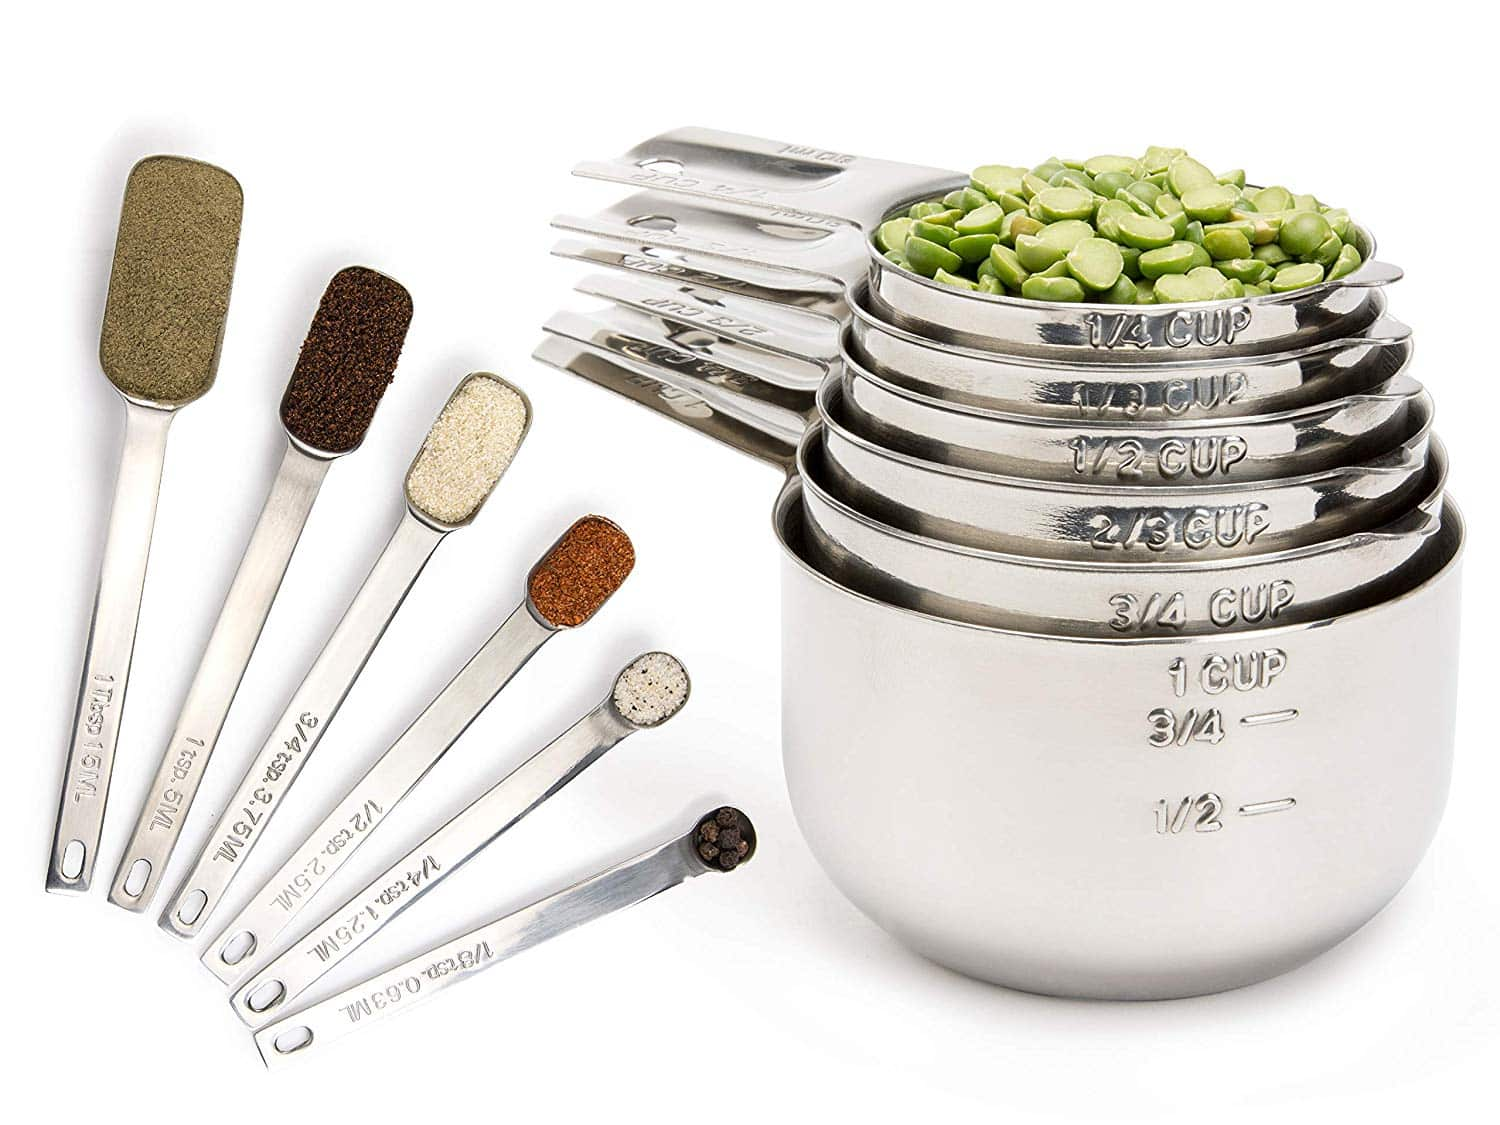 Simply Gourmet Measuring Cups